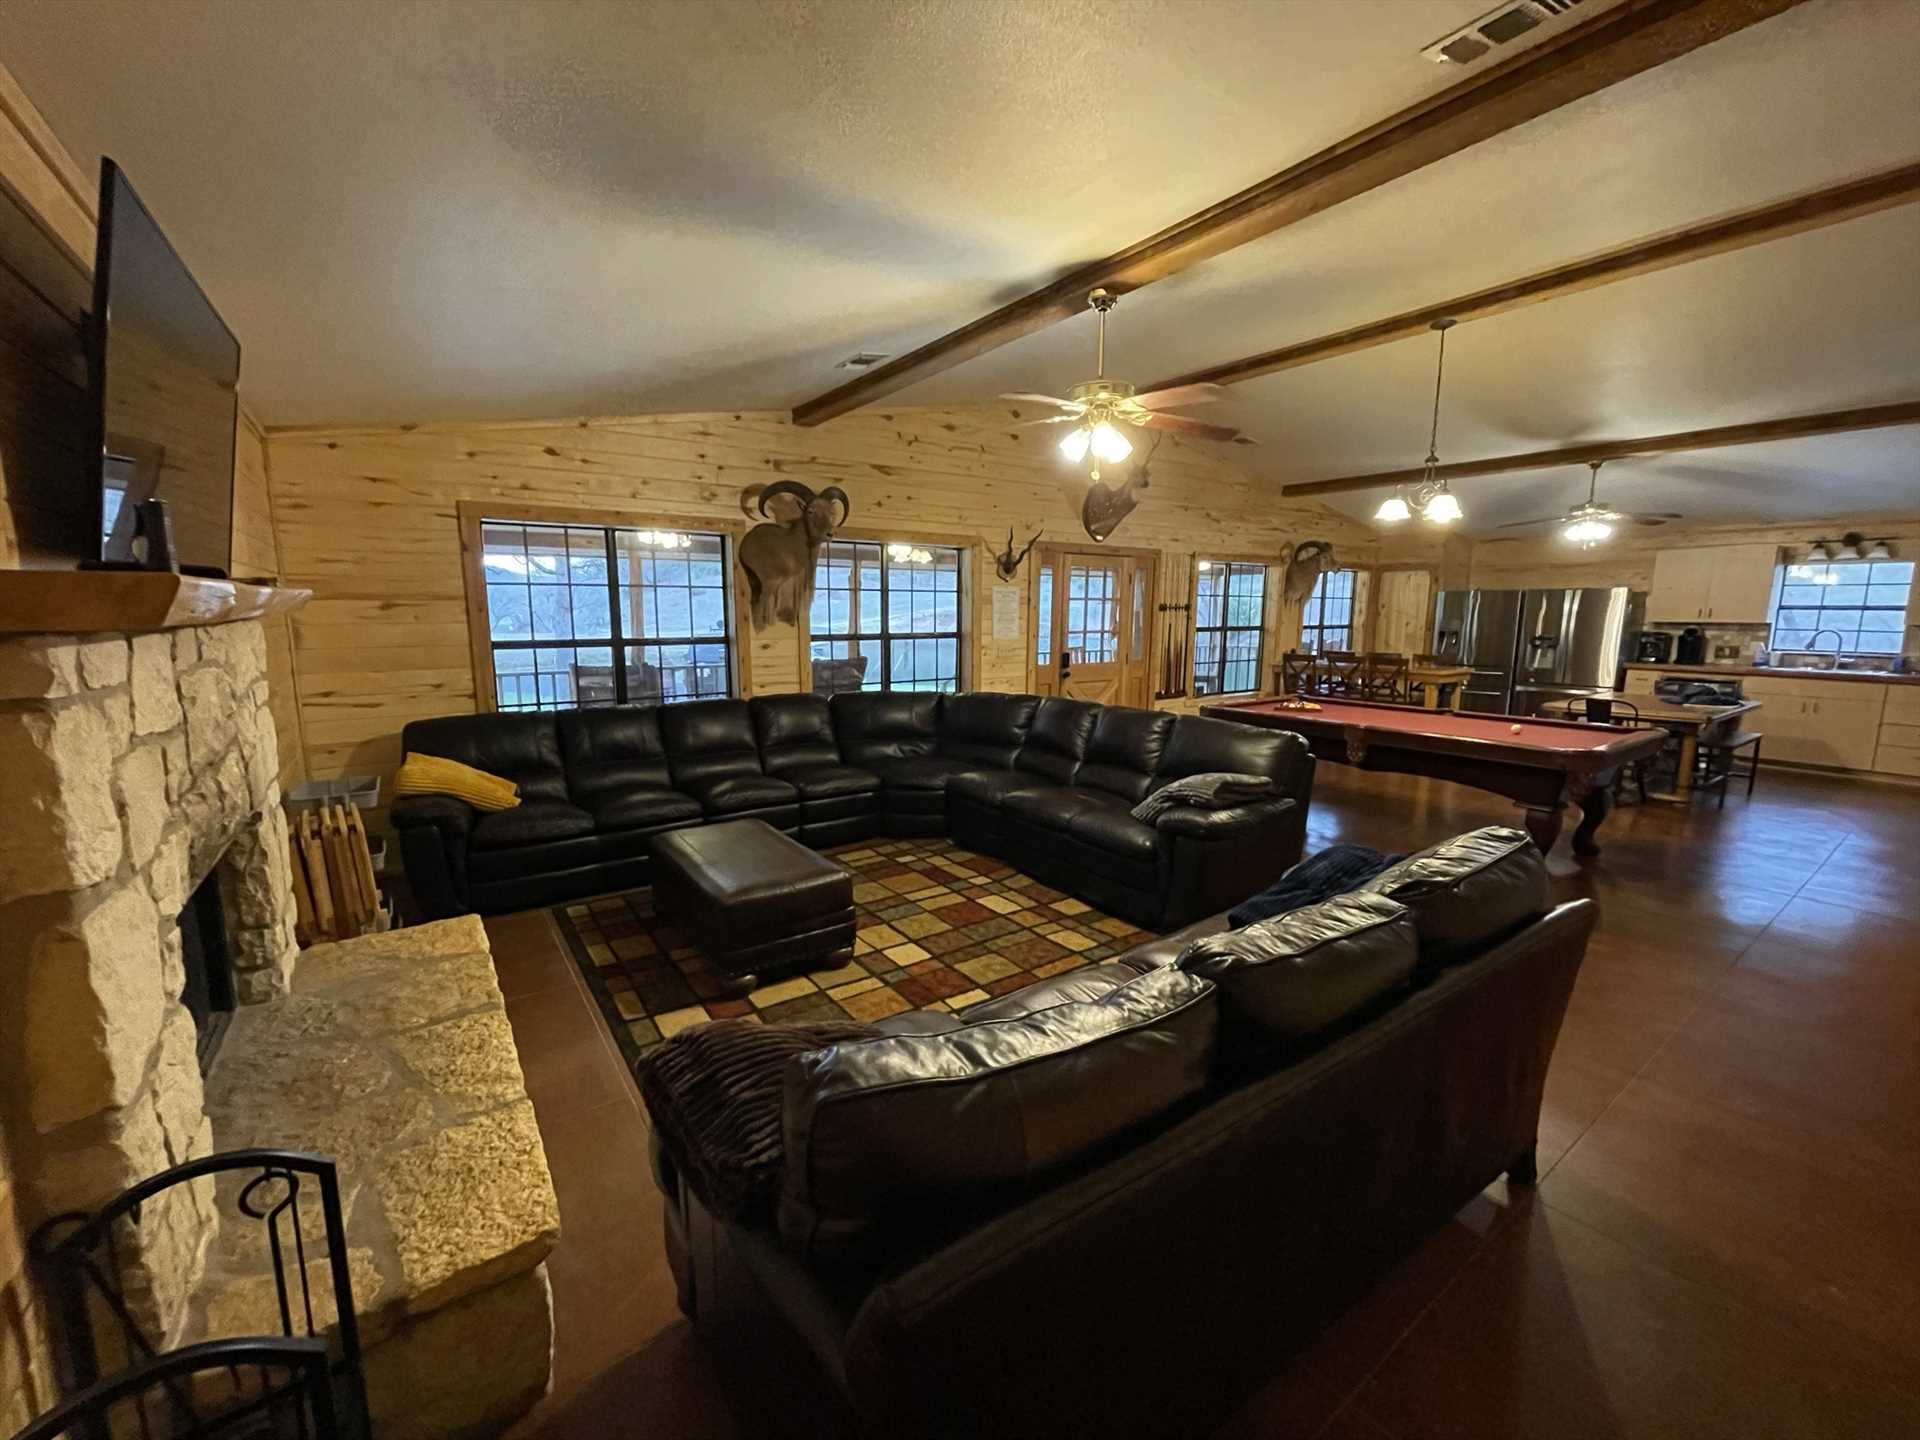 The gigantic living space includes a smart TV, bring along your Roku or Firestick to expand your viewing options! The Lodge also has Wifi service.